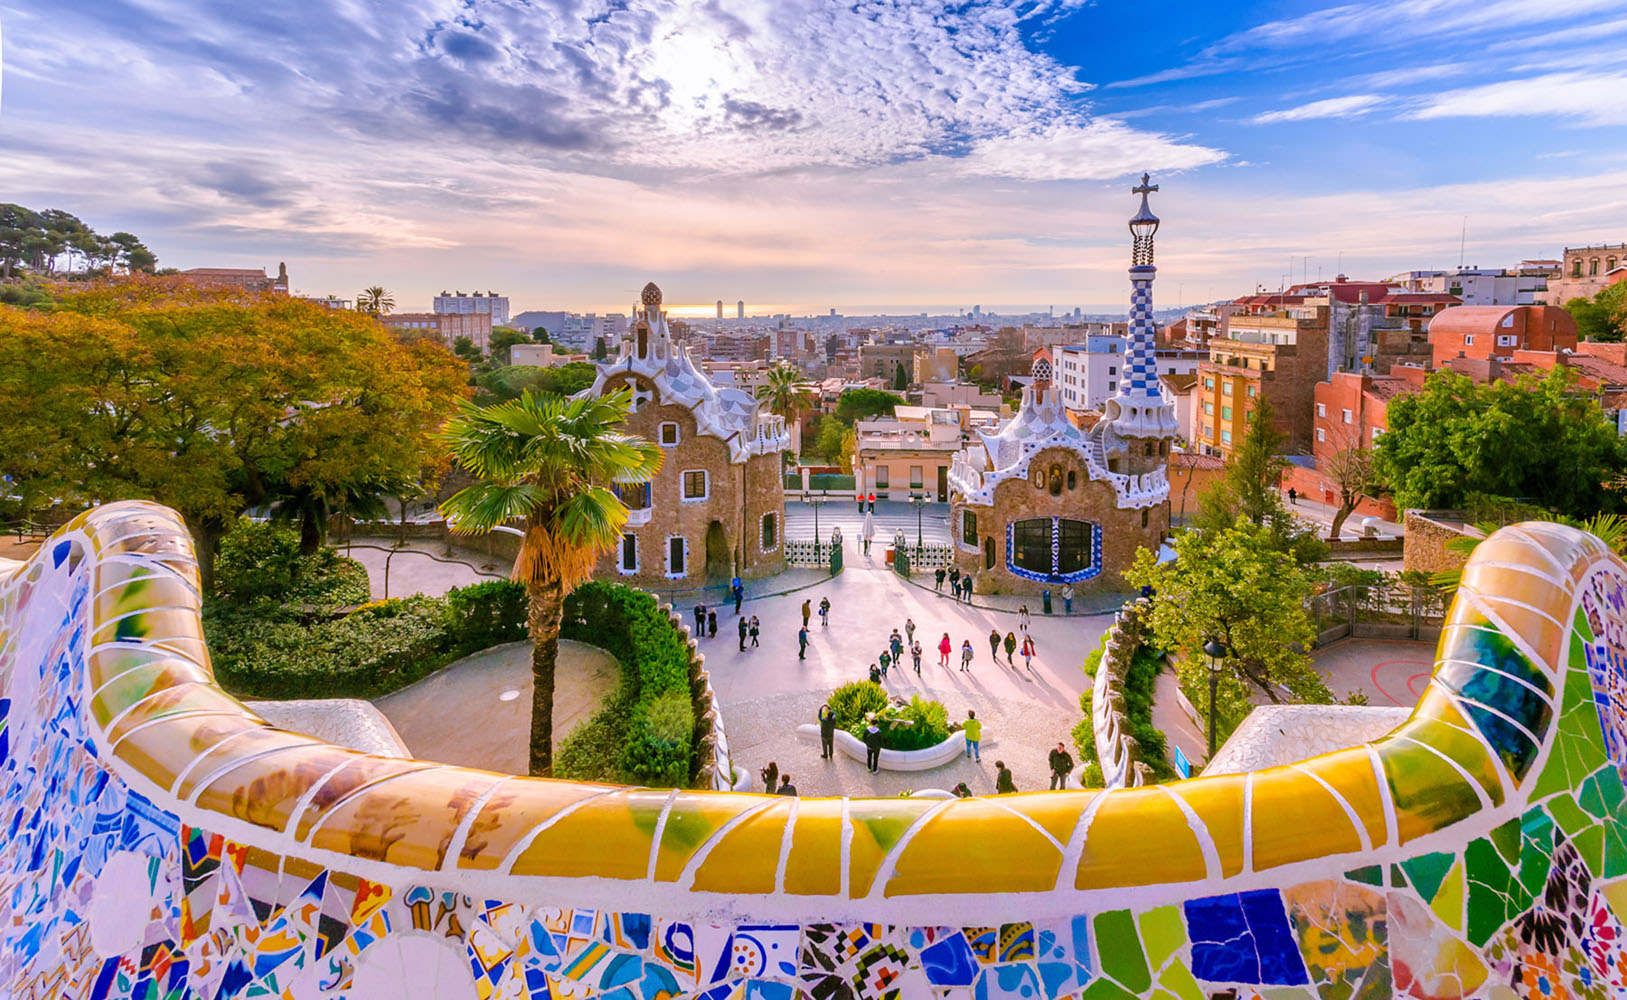 The view from Parc Guell in Barcelona.